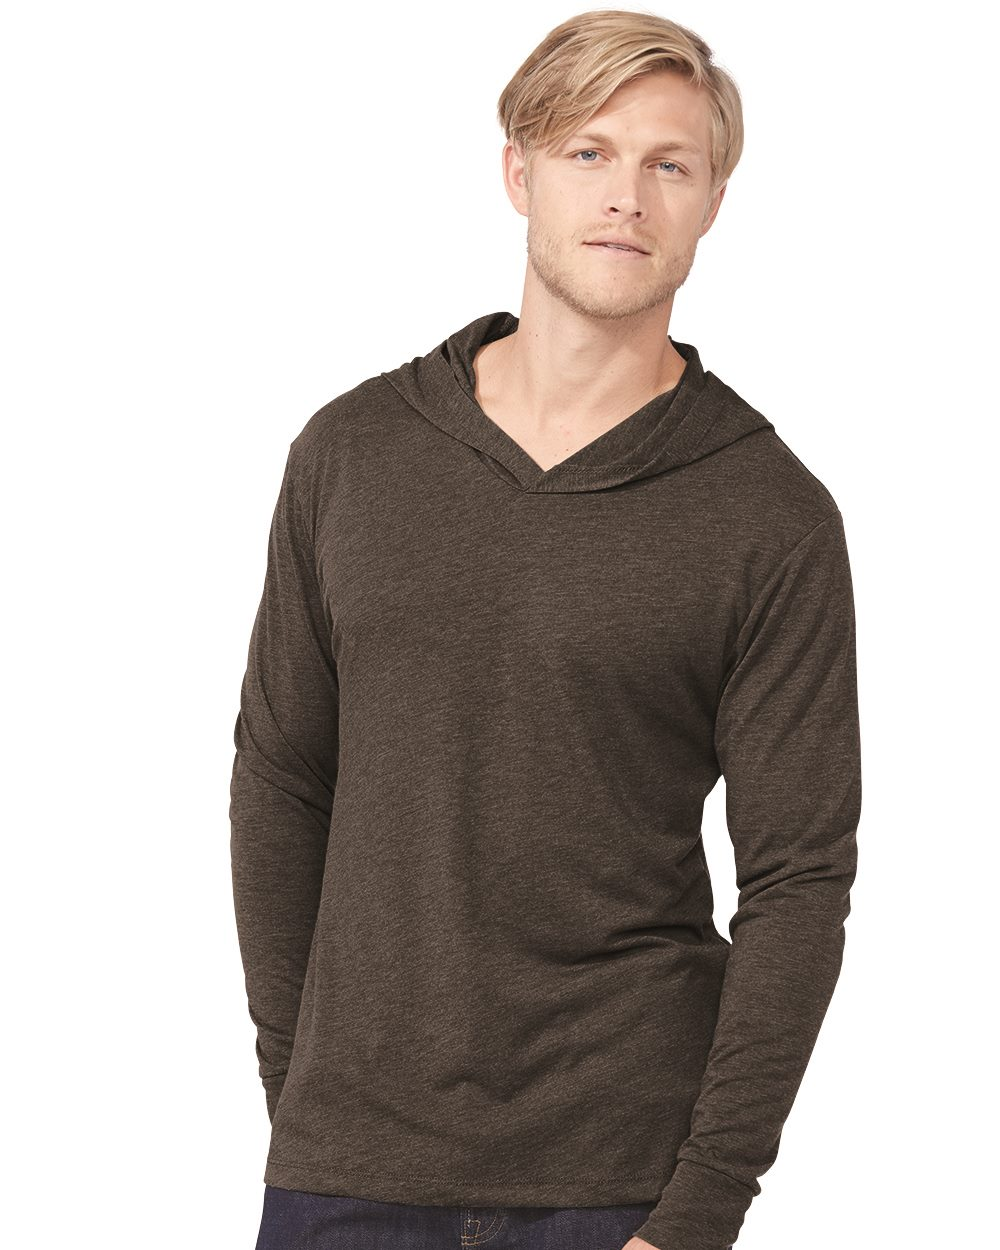 Next Level 6021-Mens Tri-Blend Long-Sleeve Hoodie